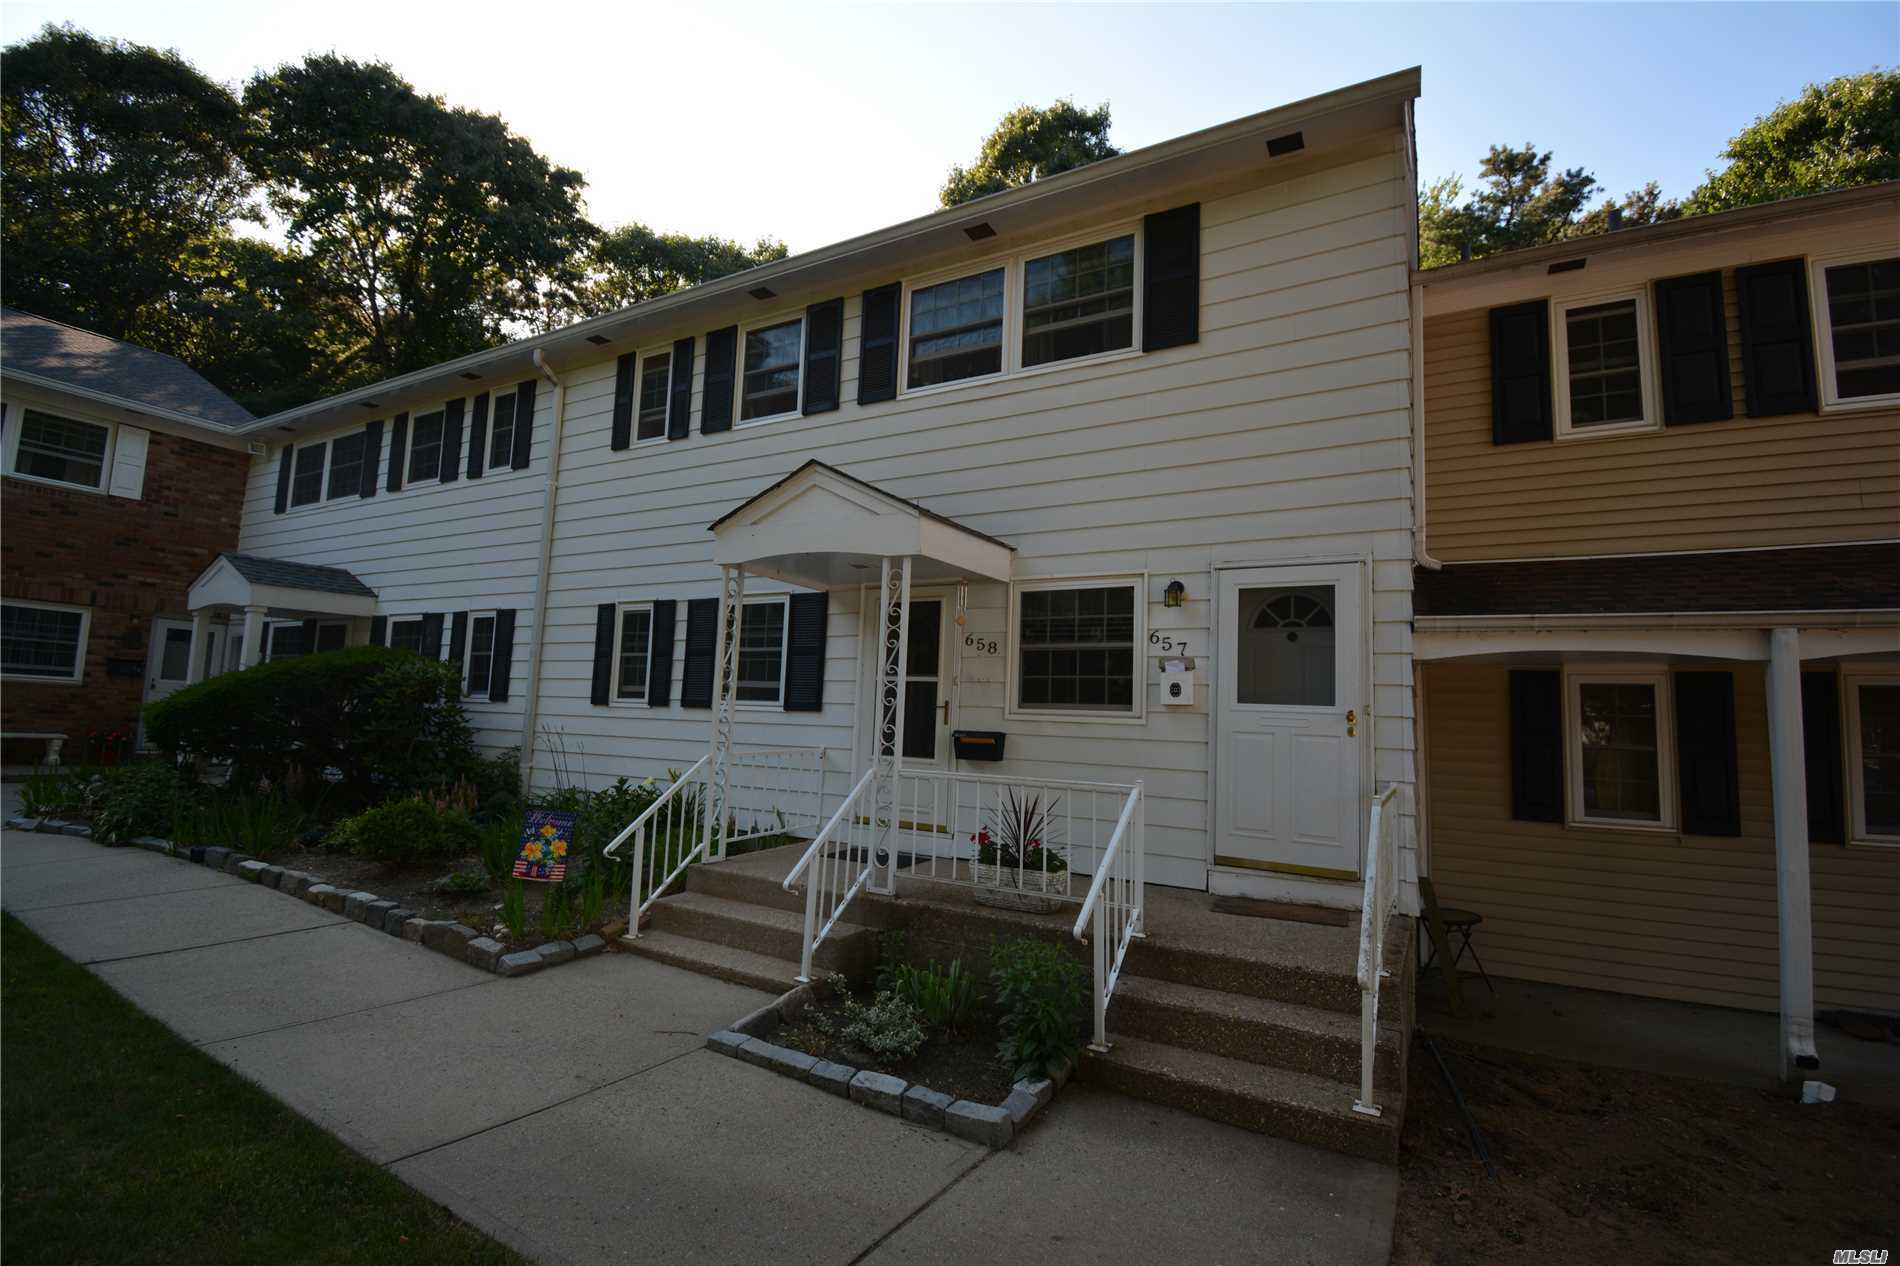 Property for sale at 657 Village Dr, Hauppauge,  NY 11788